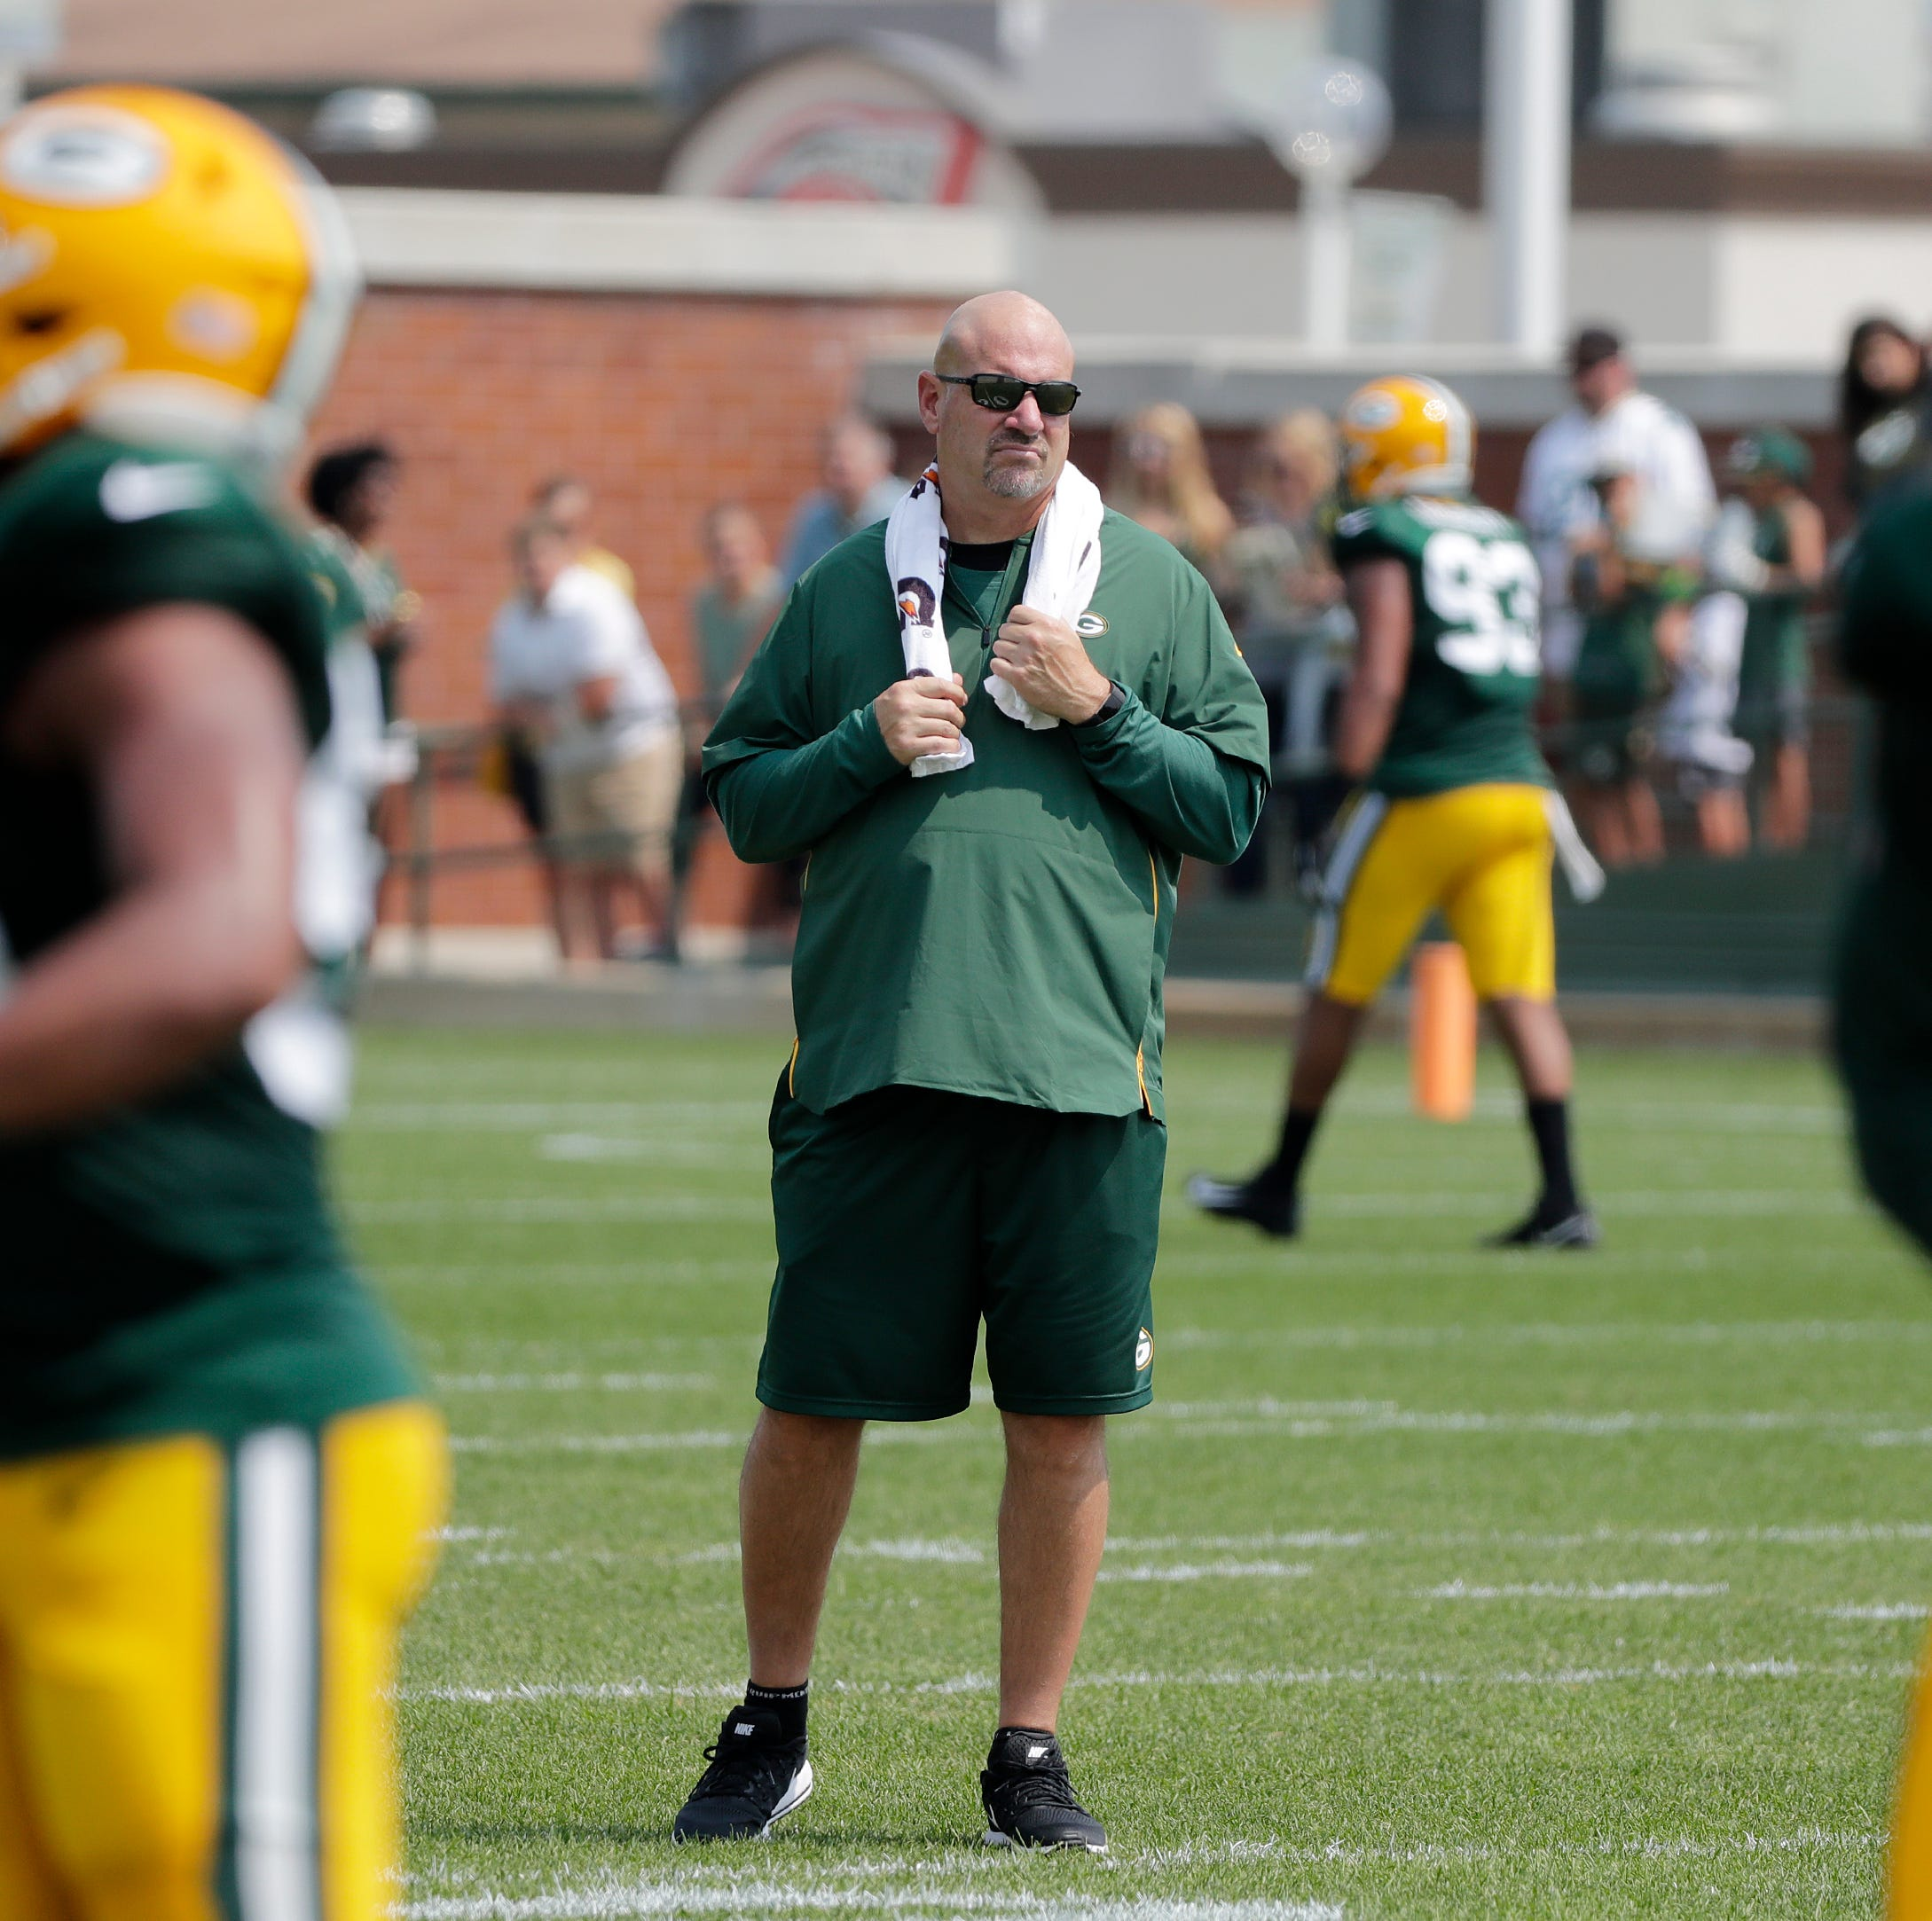 Packers notes: Mike Pettine looking for better response to adversity